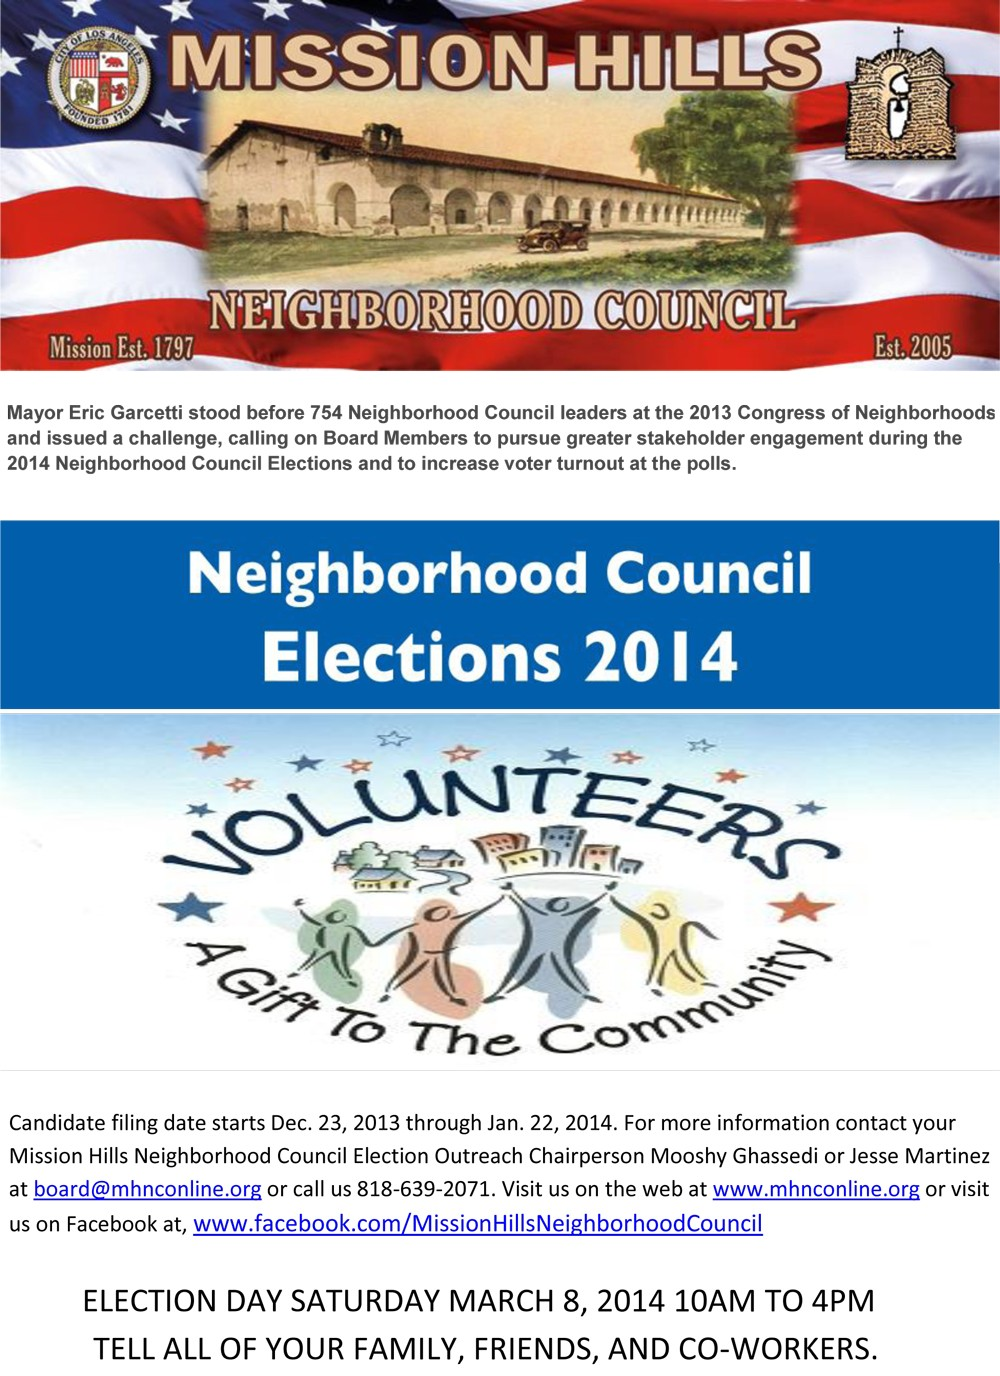 MHNC-ELECTION-OUTREACH-FLIER-1